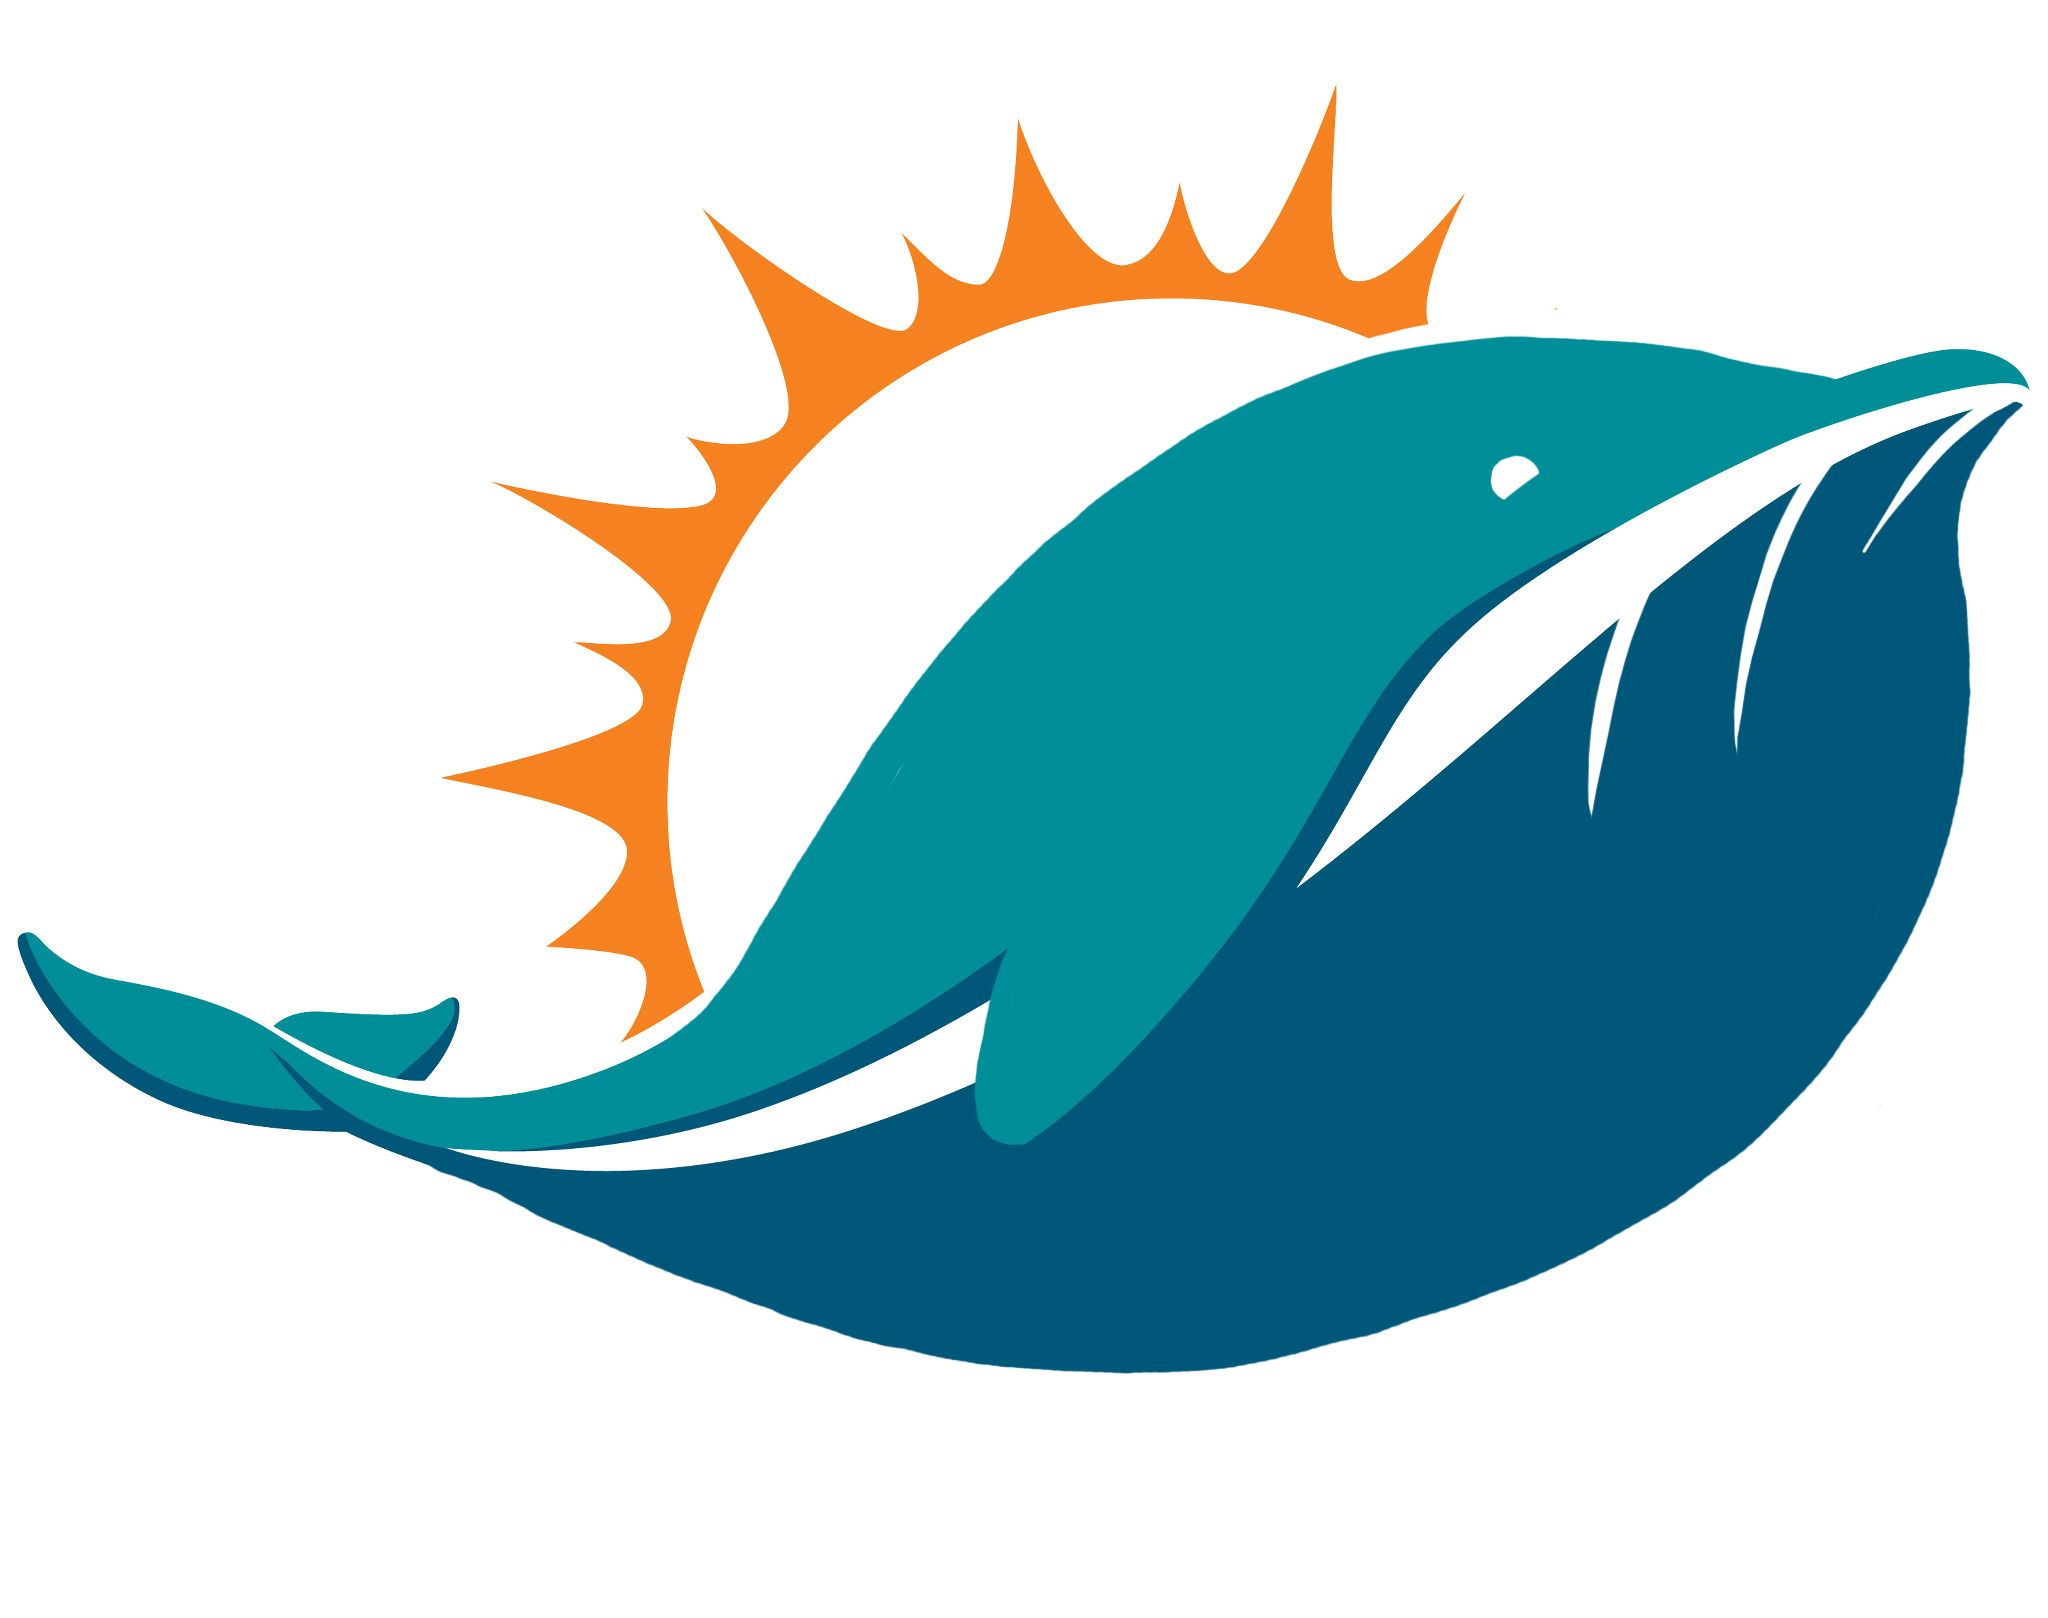 Nfl Logo Re Designs The Draw Play